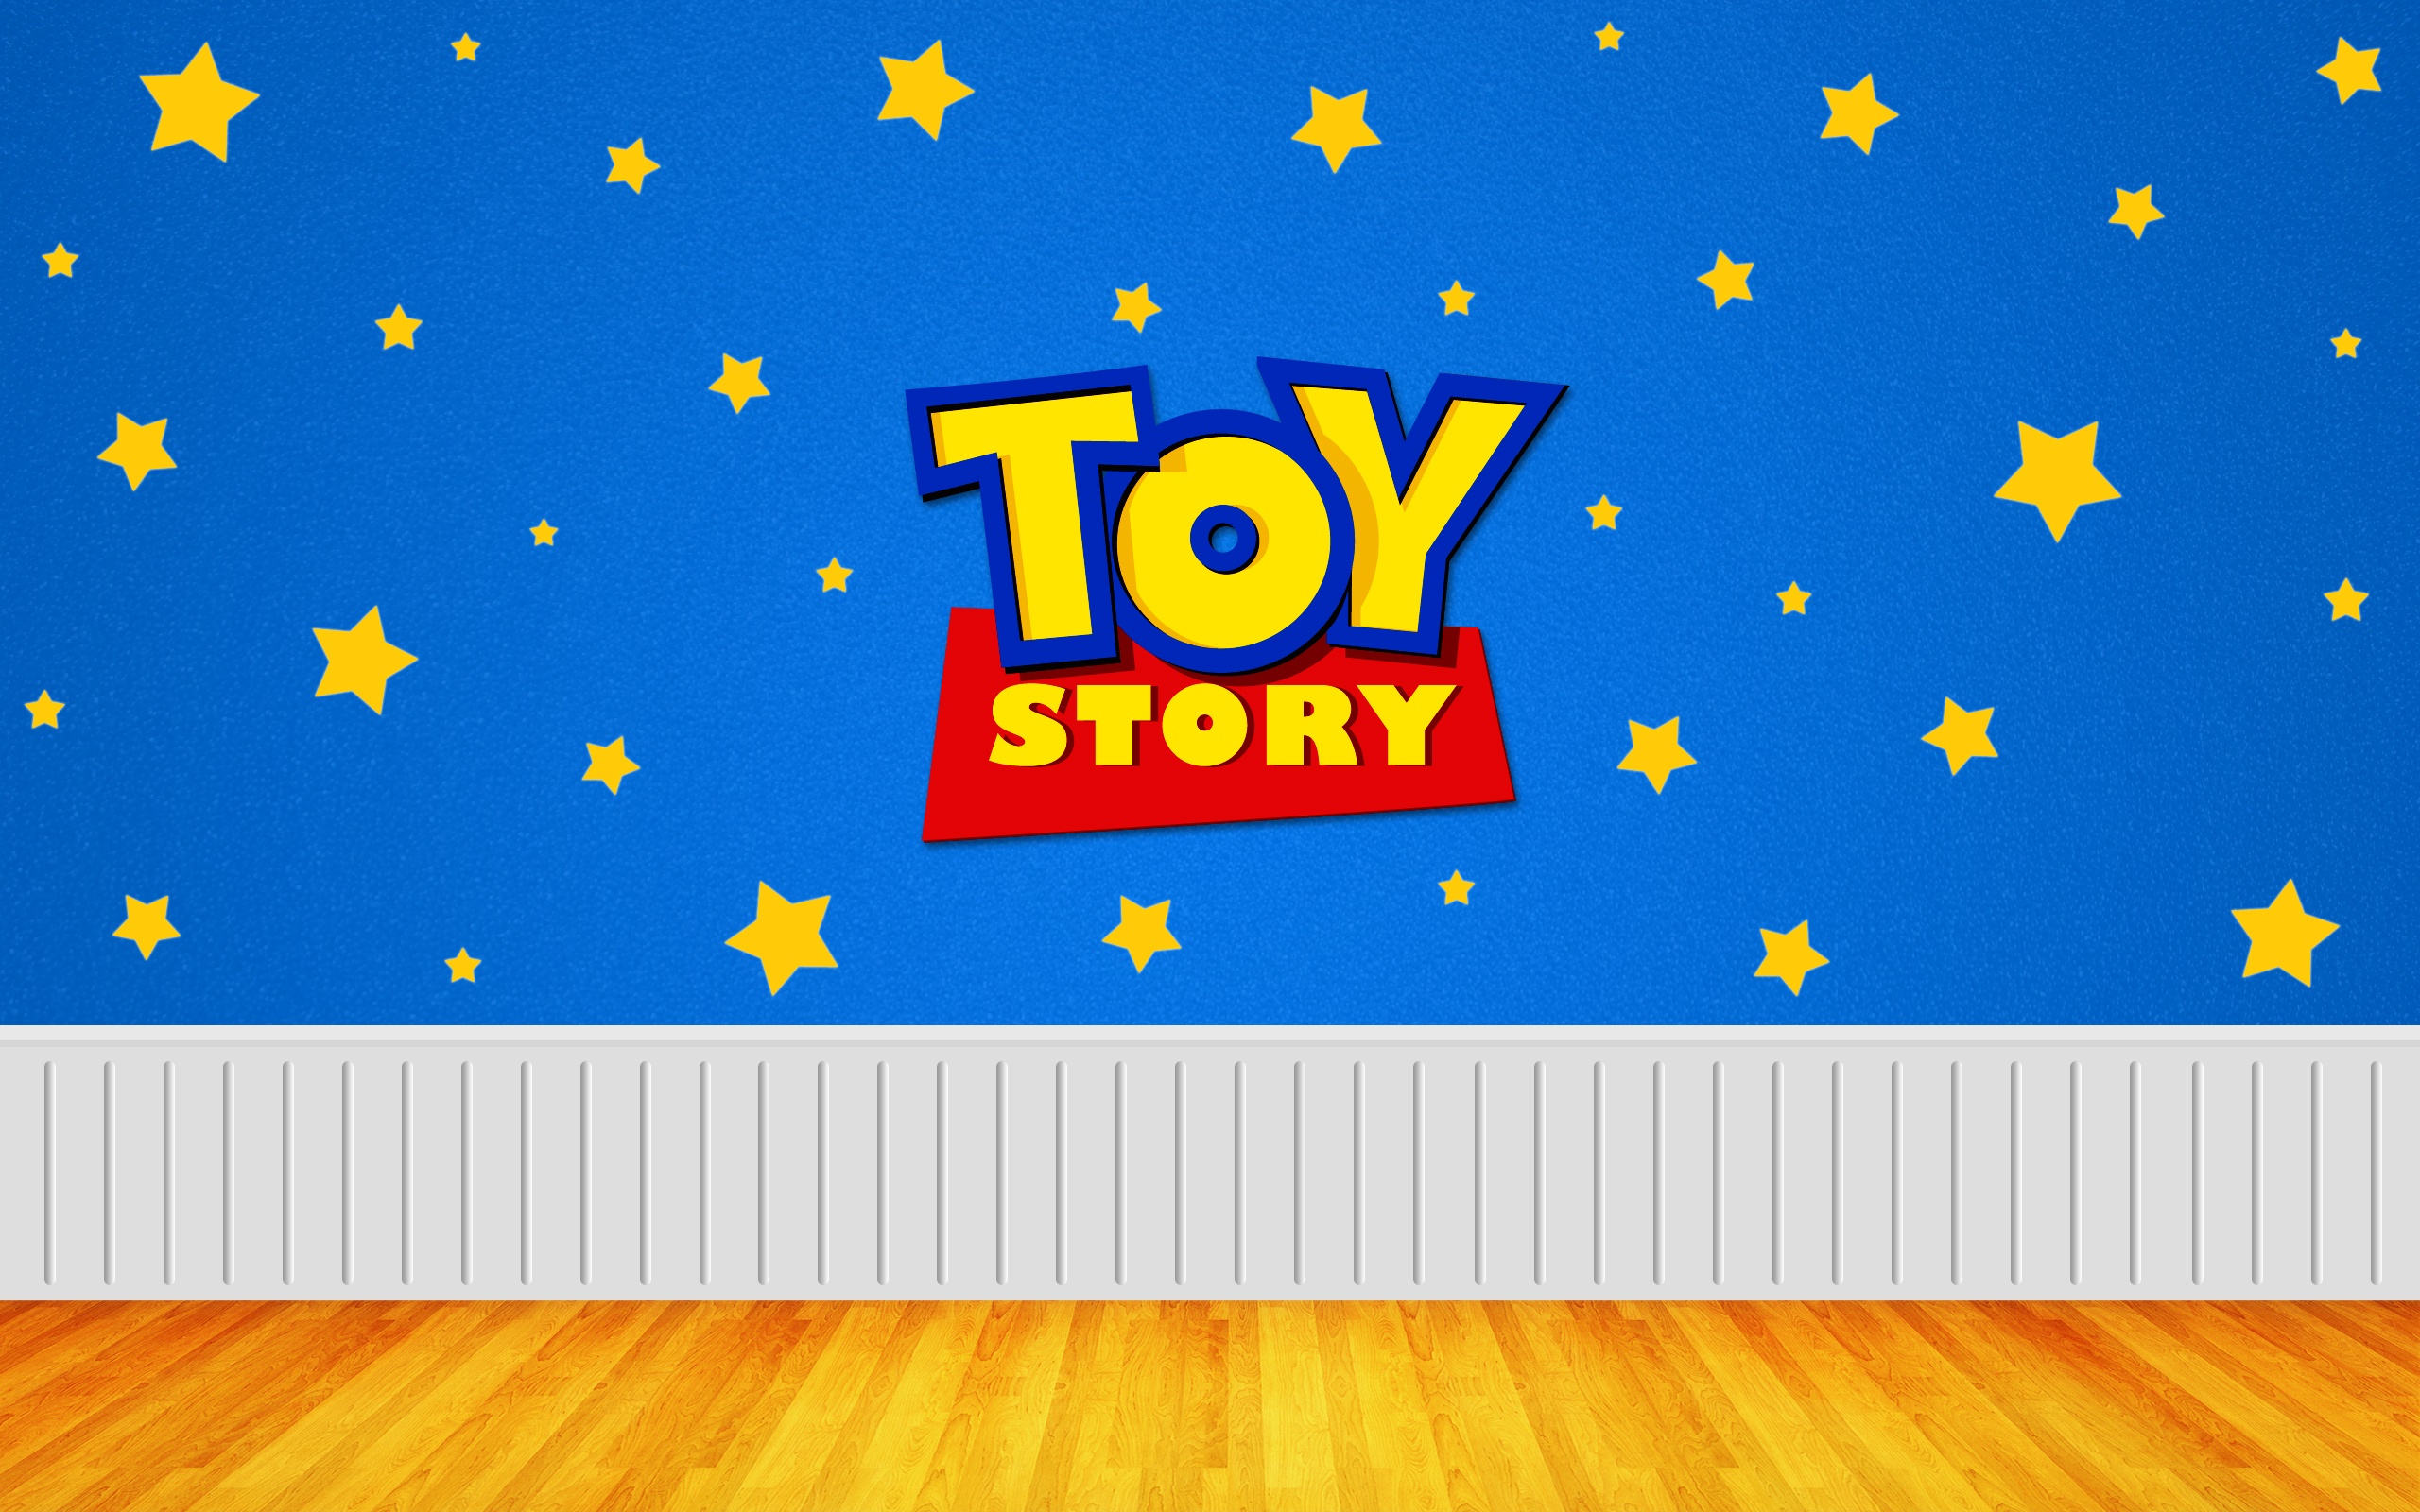 toy story - photo #48